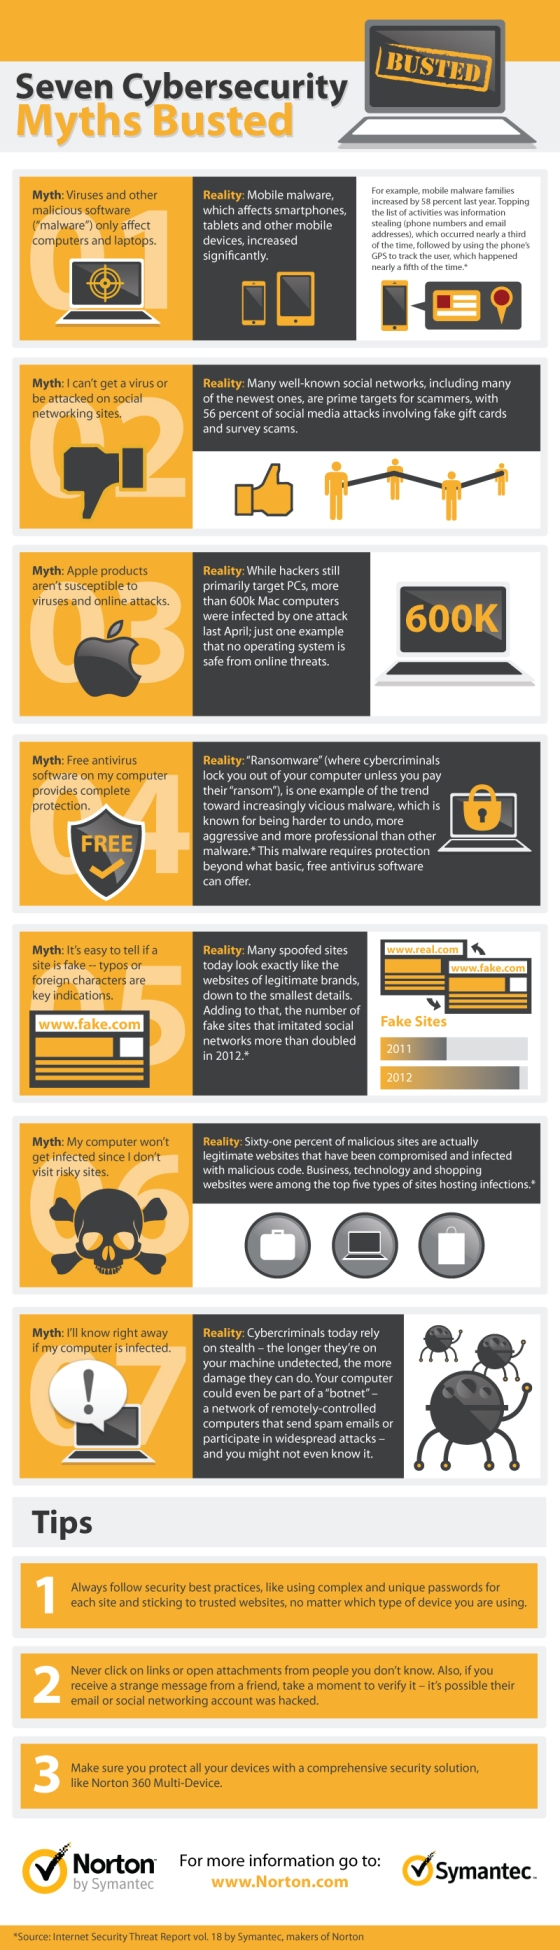 7 Cybersecurity Myths Busted